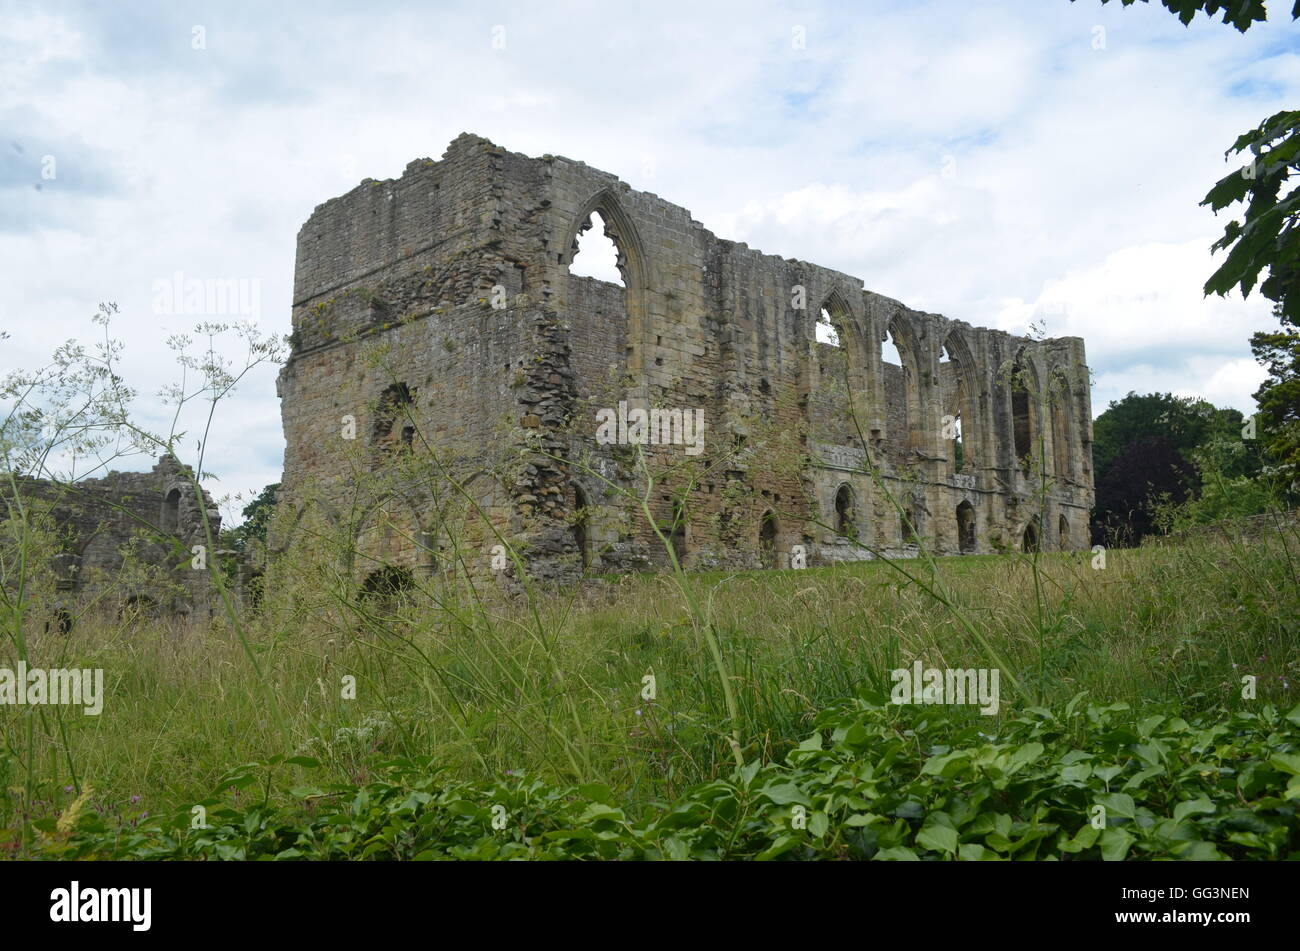 Easby Abbey, a ruined Premonstratensian abbey on the banks of the River Swale on the outskirts of Richmond, North - Stock Image